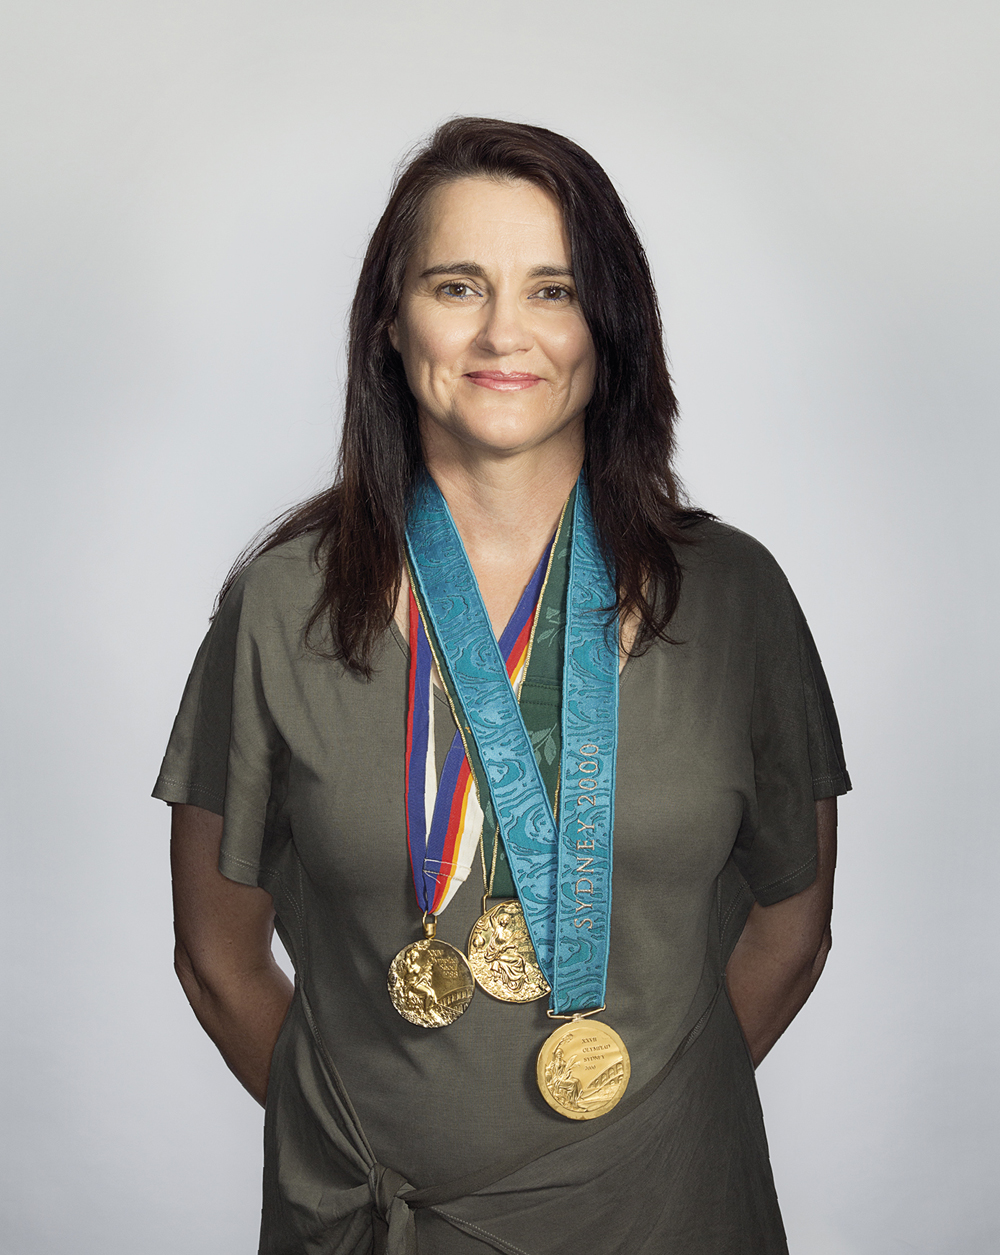 Portrait of Rechelle Hawkes with her medals